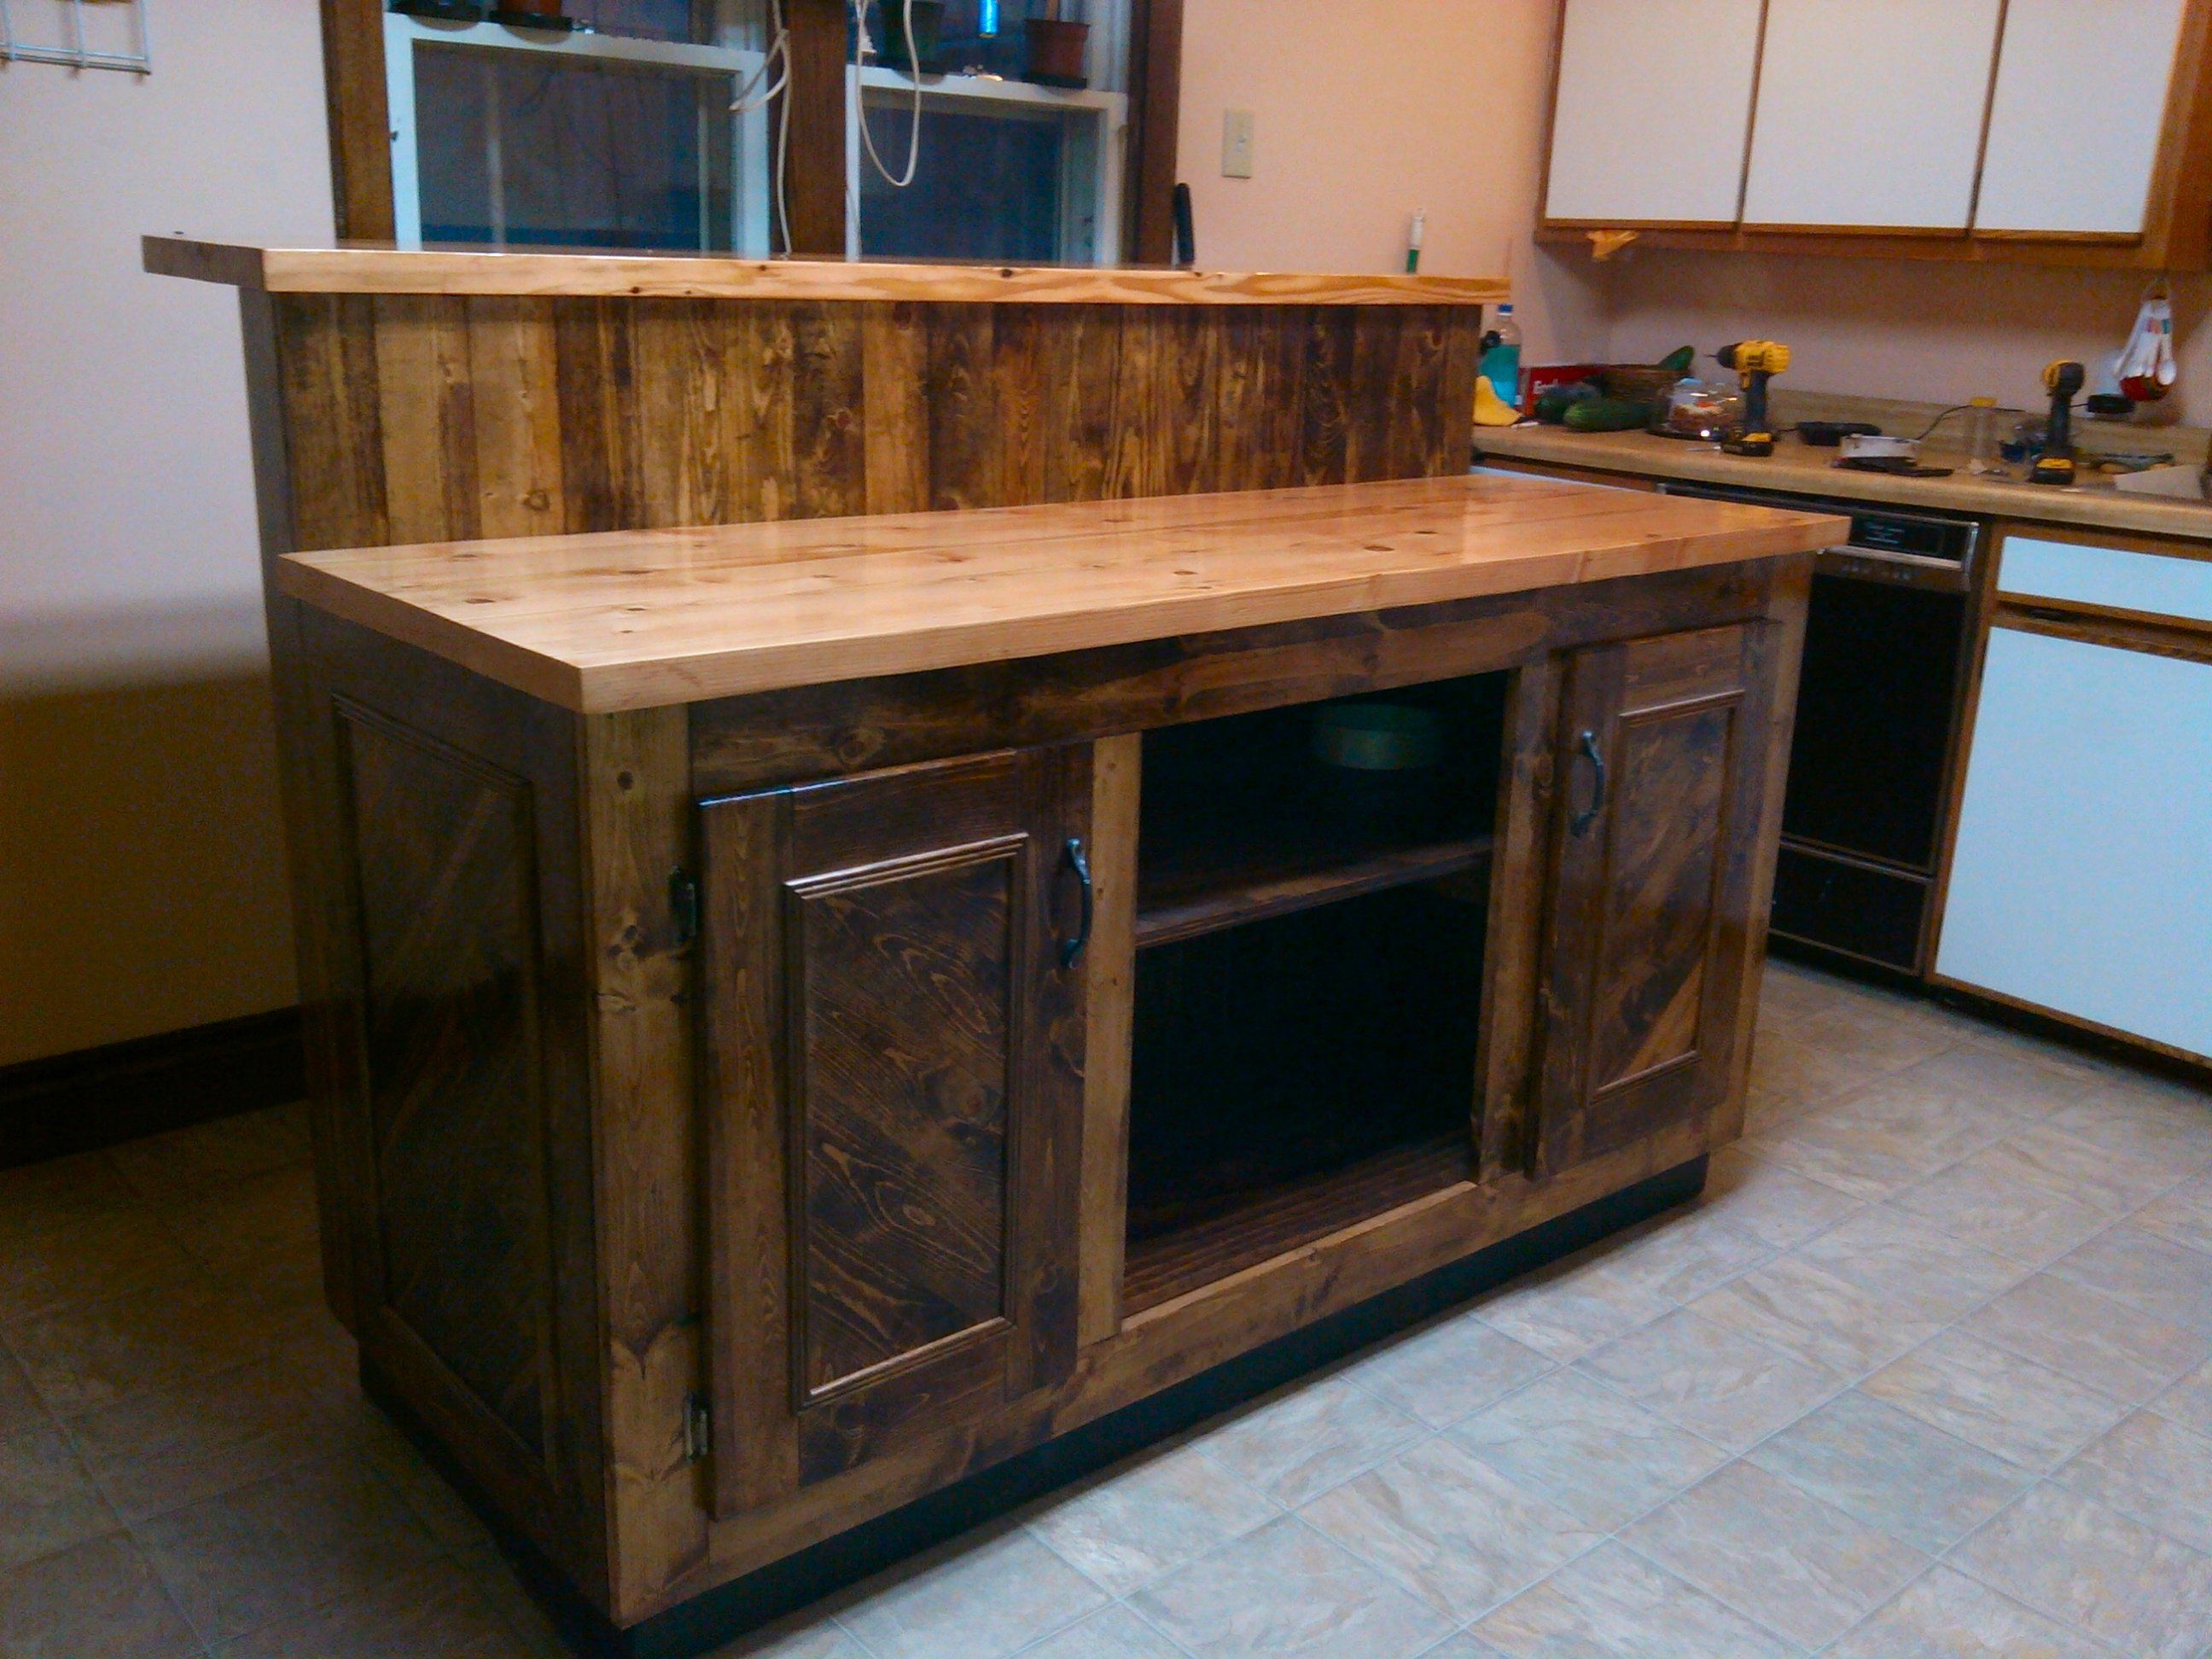 Magnificent Two Tier Pallet Kitchen Island D Co Fa Ade Ext Rieure